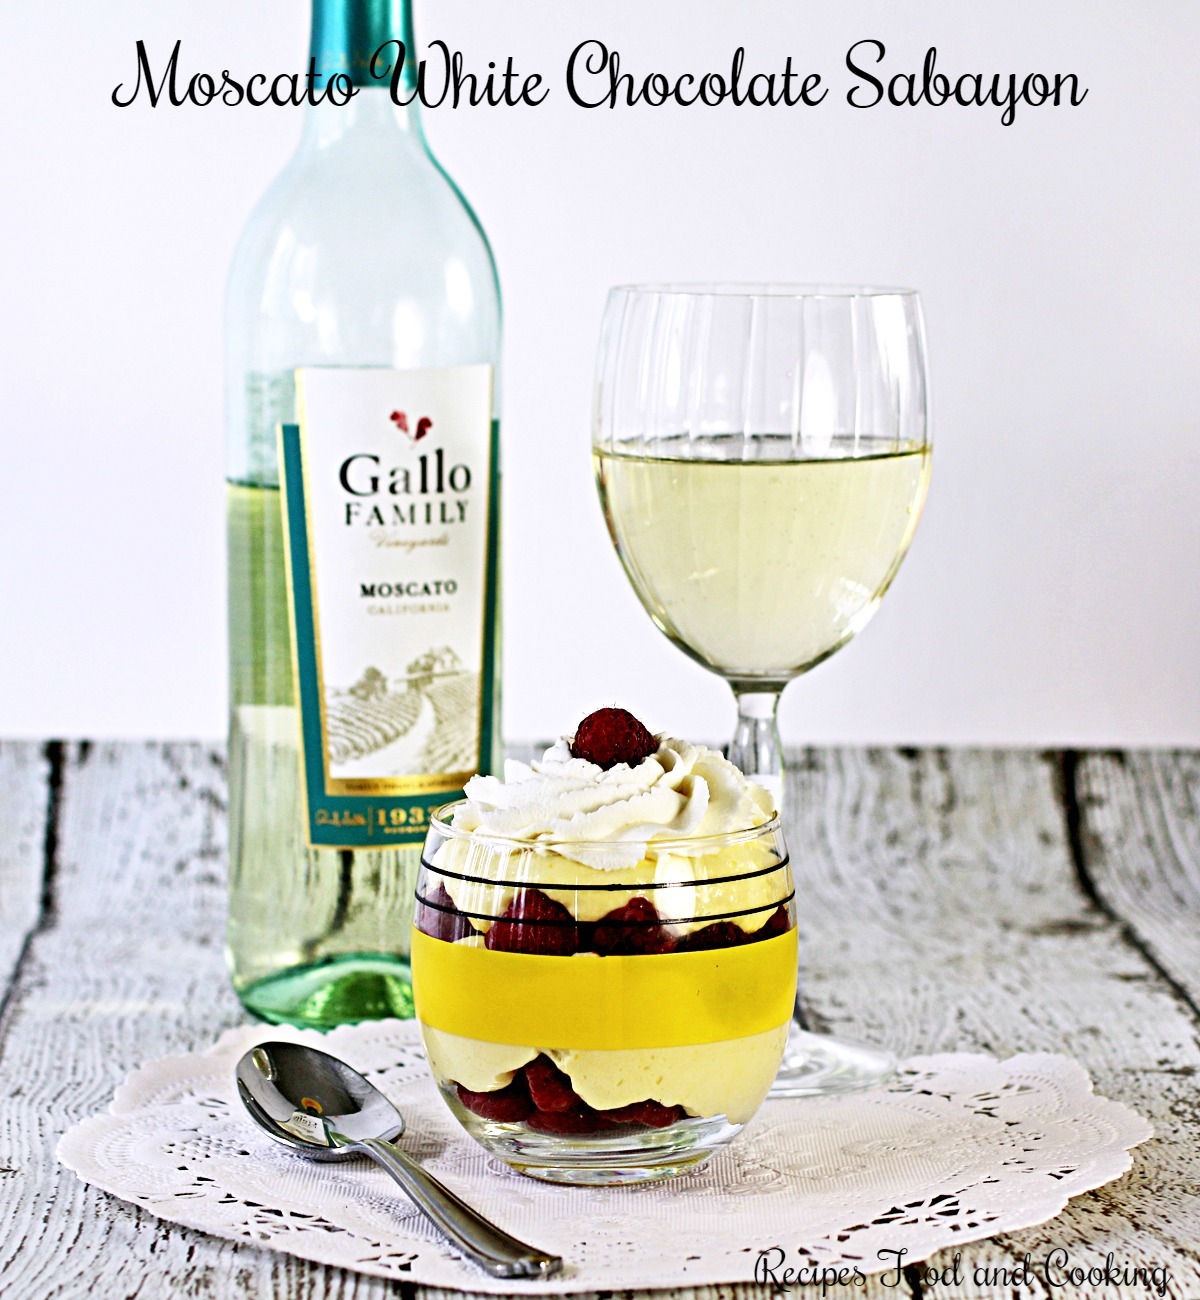 Moscato White Chocolate Sabayon